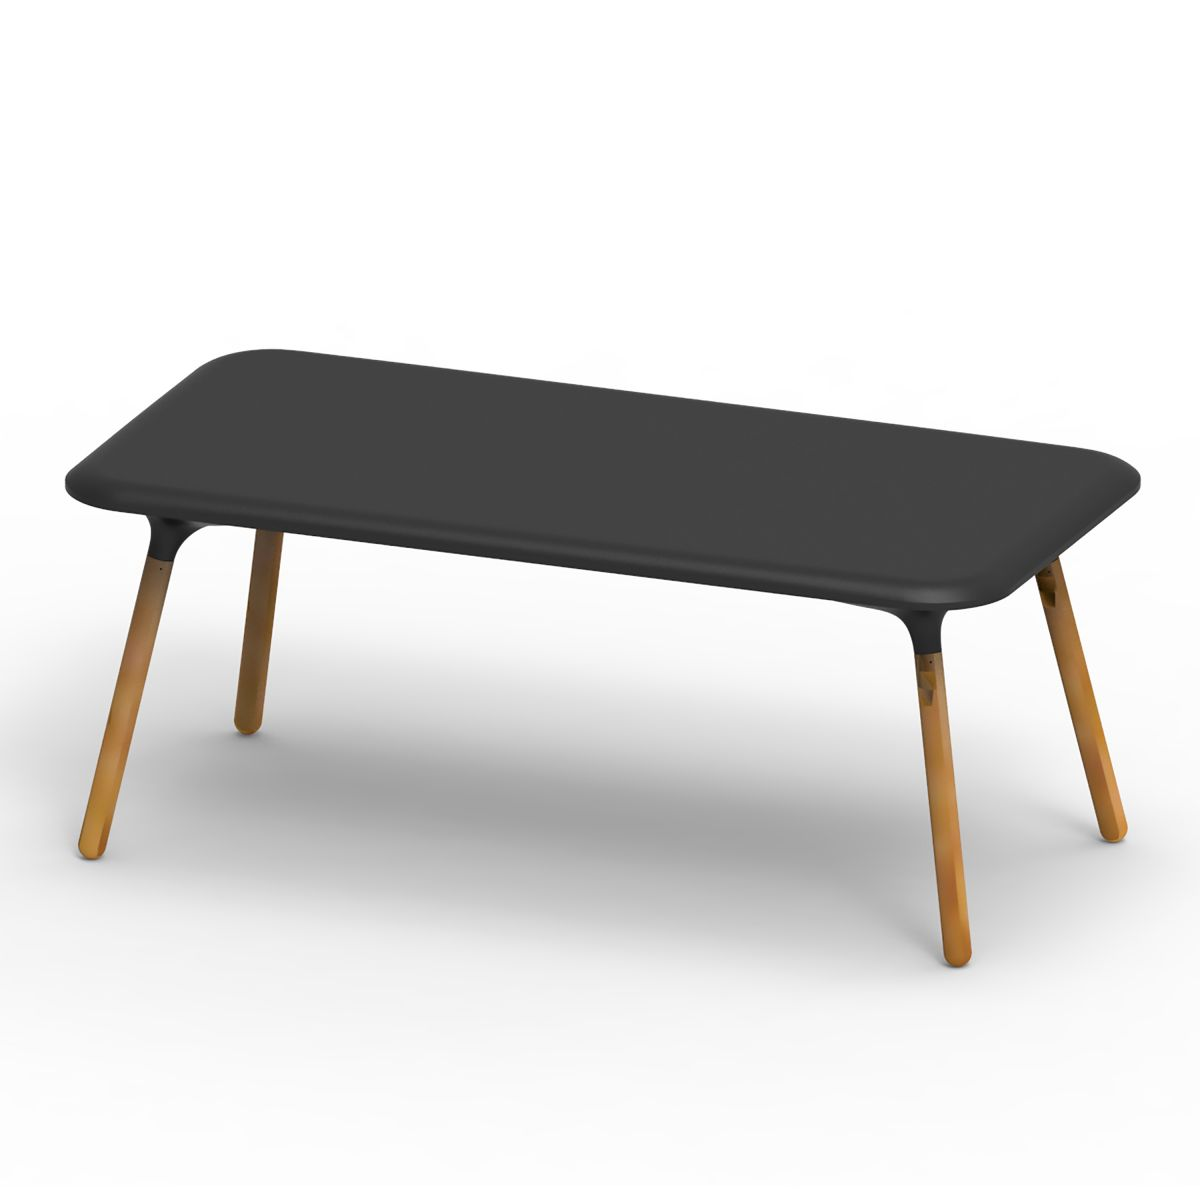 Table de repas sloo vondom zendart design for Table de repas design